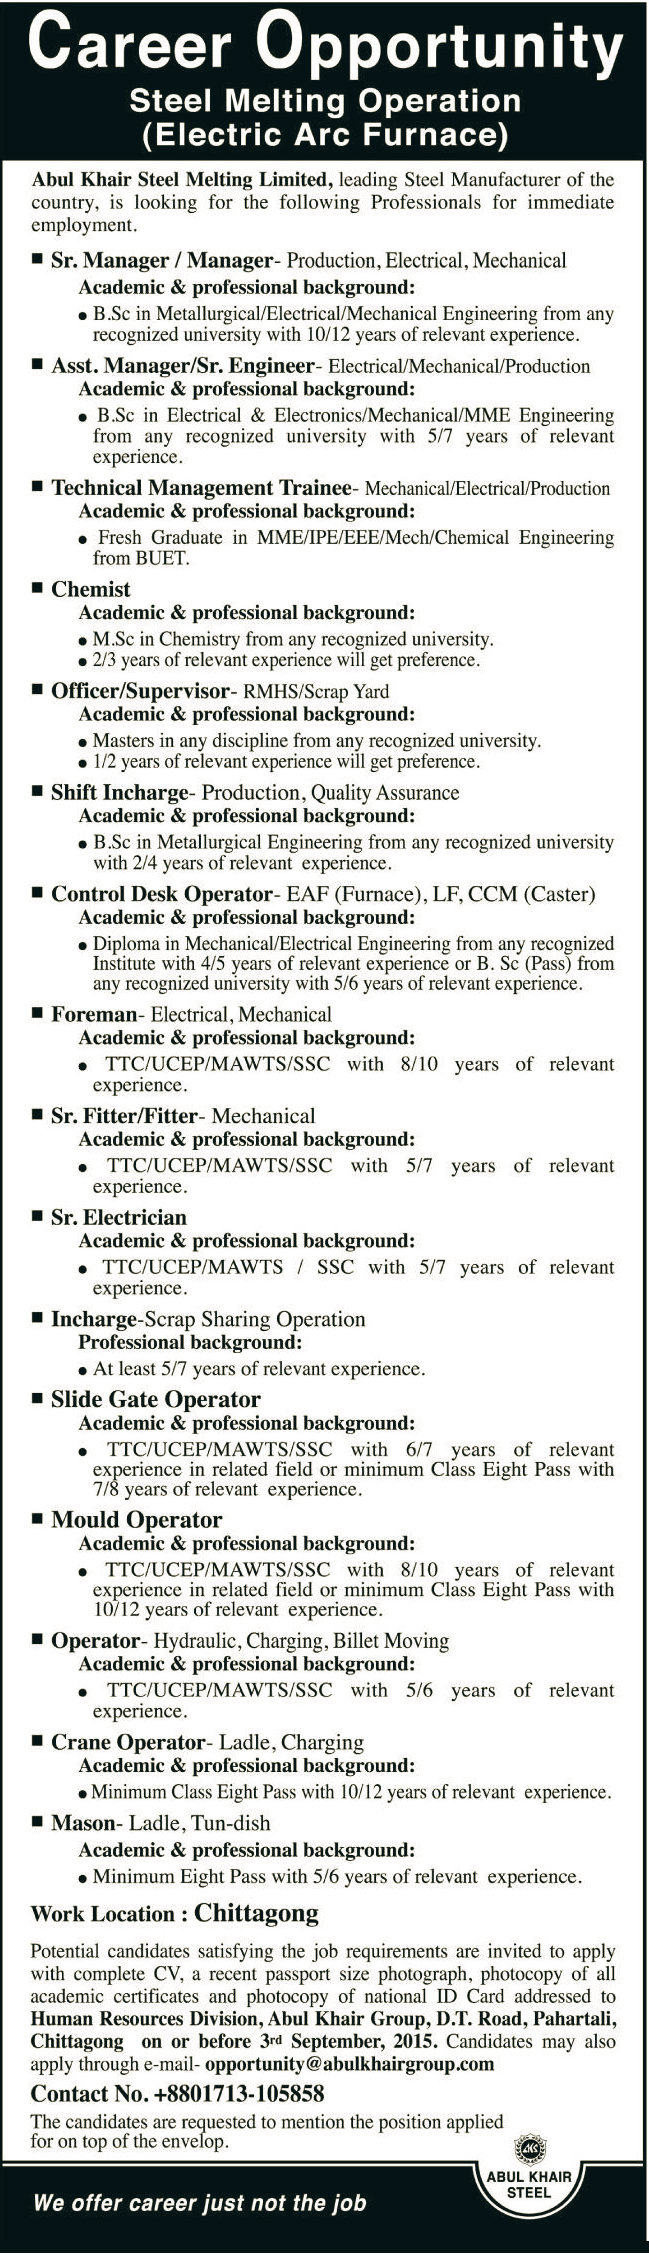 Abul Khair Steel Melting Limited Job Opportunity